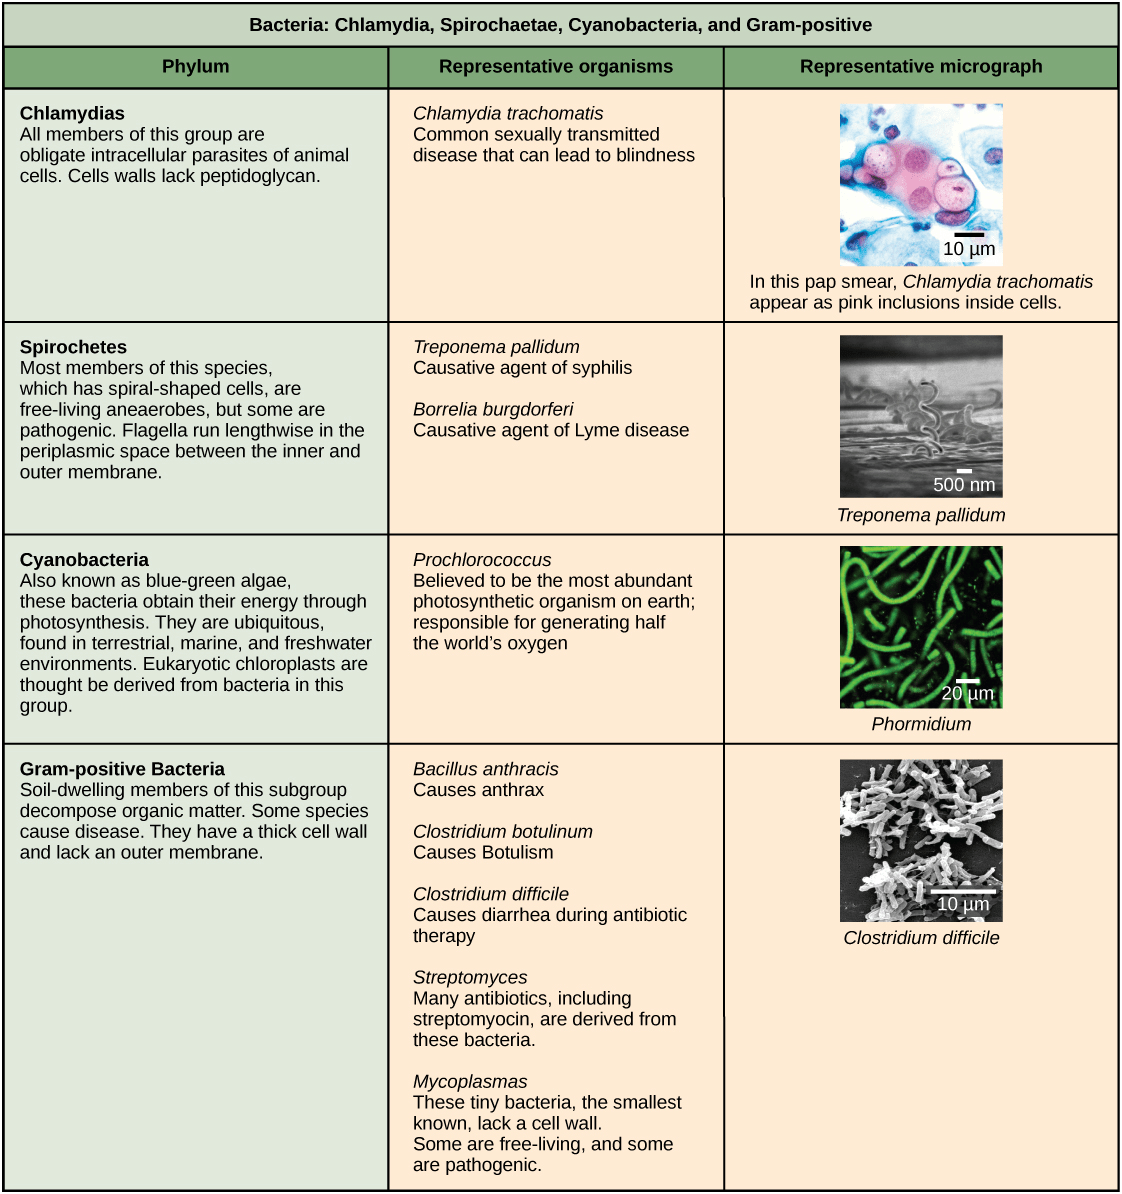 hight resolution of chlamydia spirochetes cyanobacteria and gram positive bacteria are described in this table